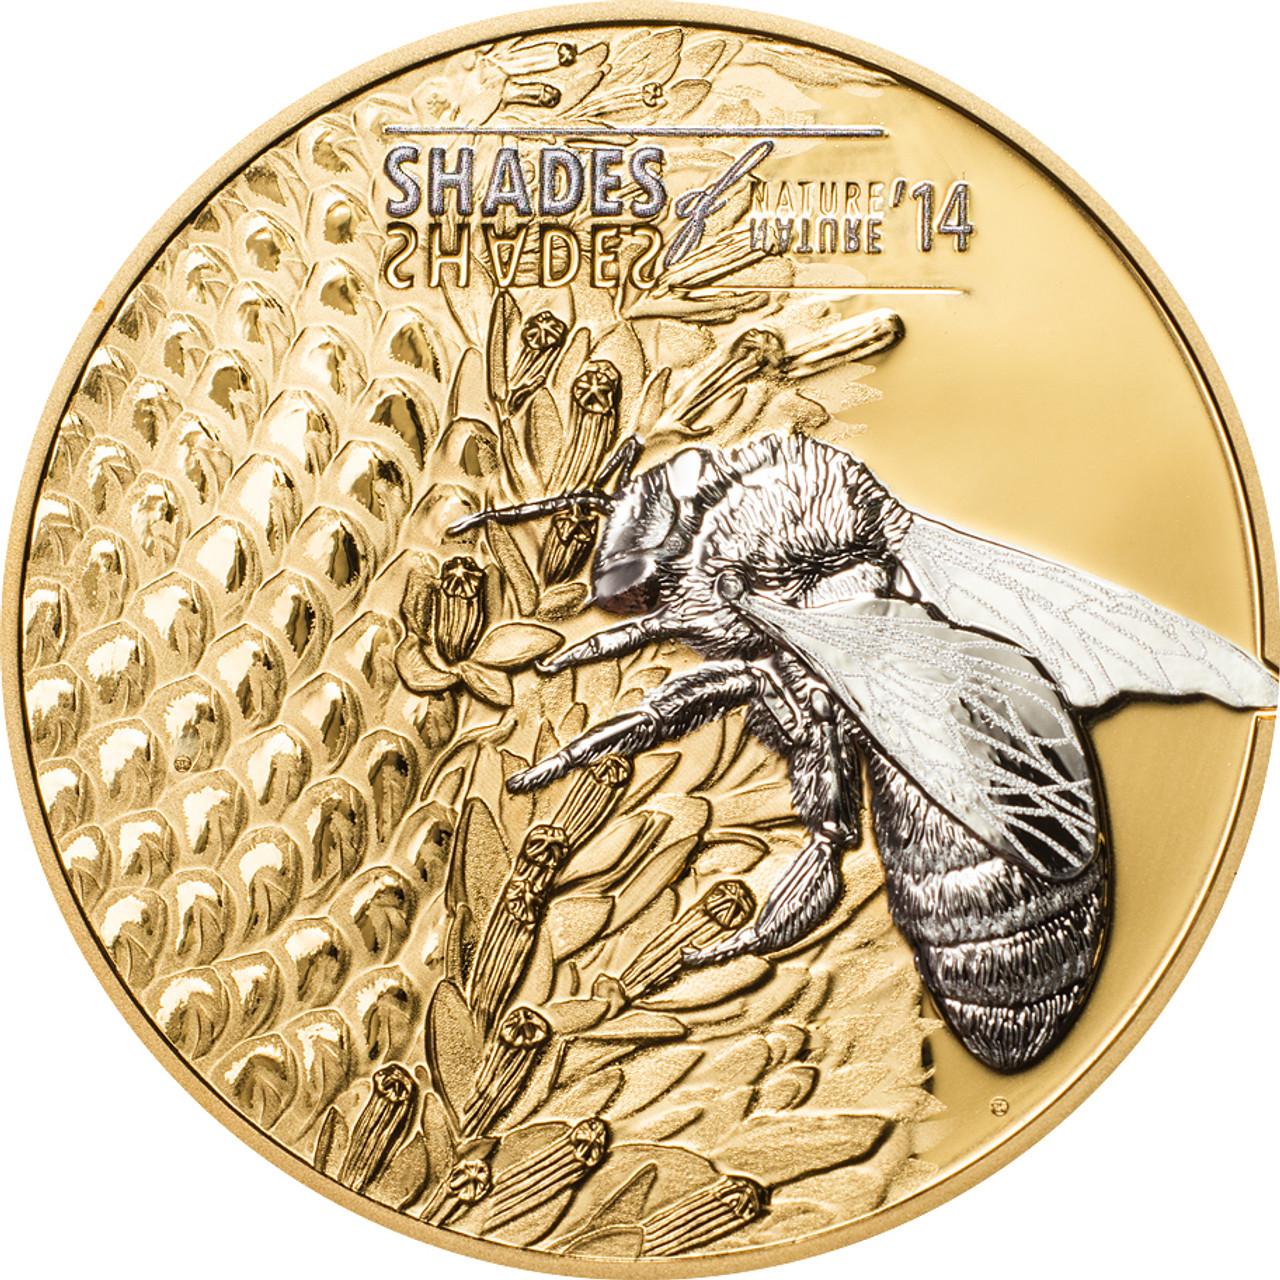 shades of nature bee cook islands 2014 5 gilded silver coin. Black Bedroom Furniture Sets. Home Design Ideas